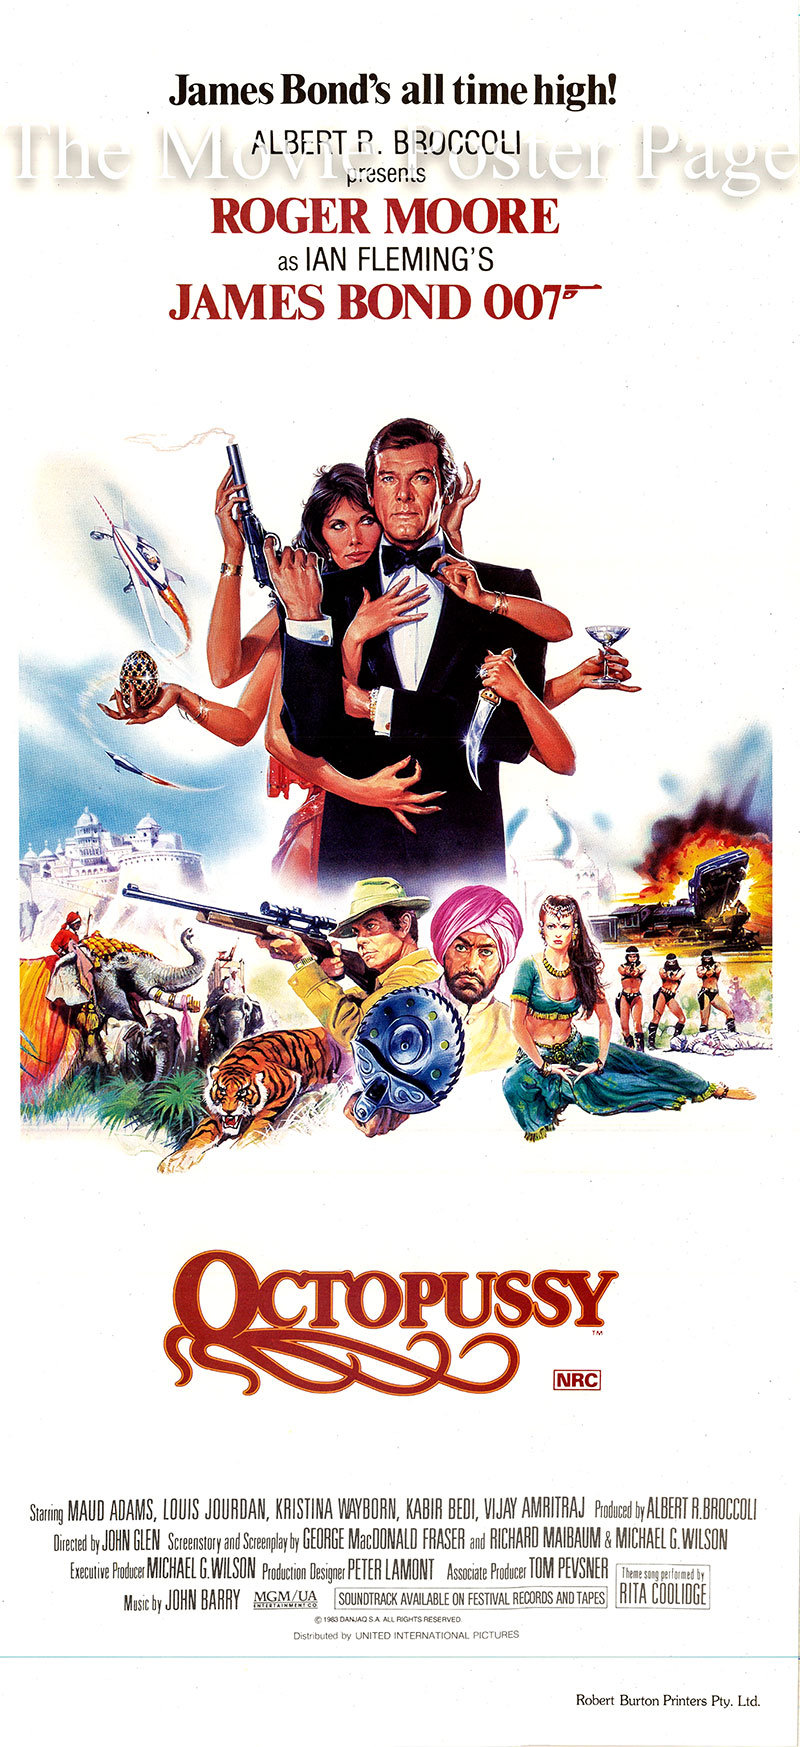 Pictured is an Australian daybill made to promote the 1983 John Glen film Octopussy starring Roger Moore as James Bond.